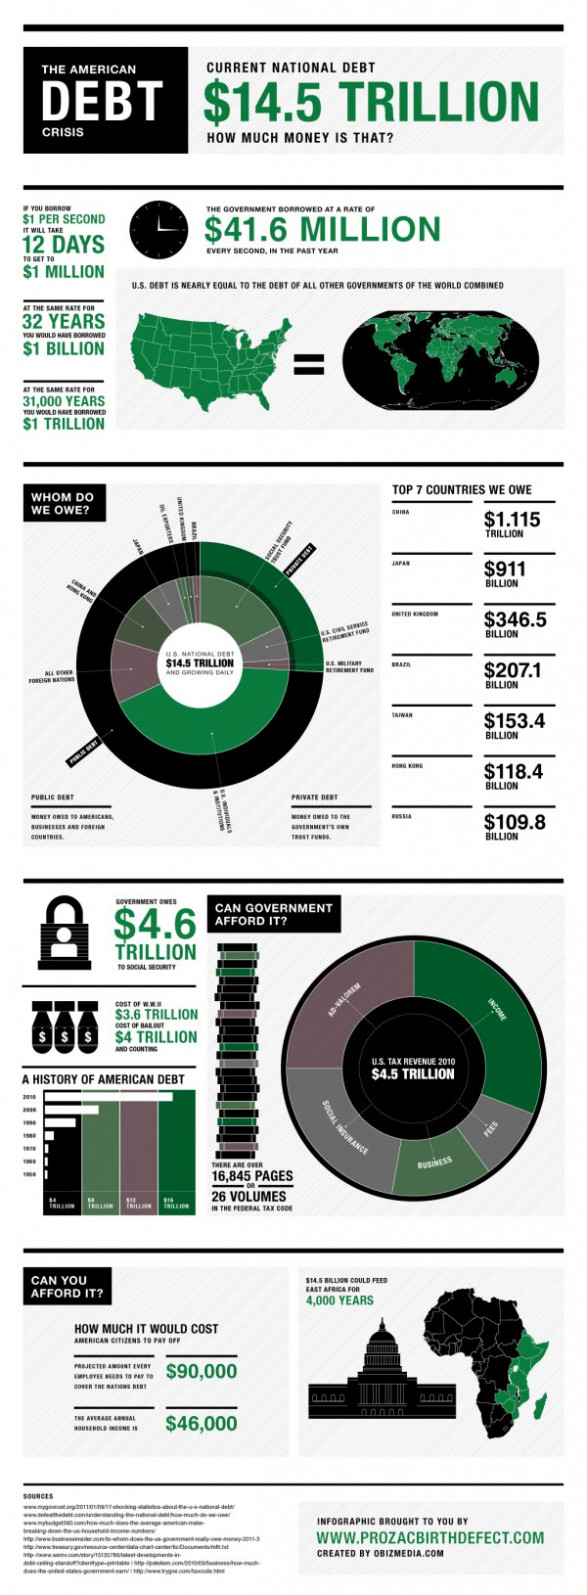 The American Debt Crisis [INFOGRAPHIC]